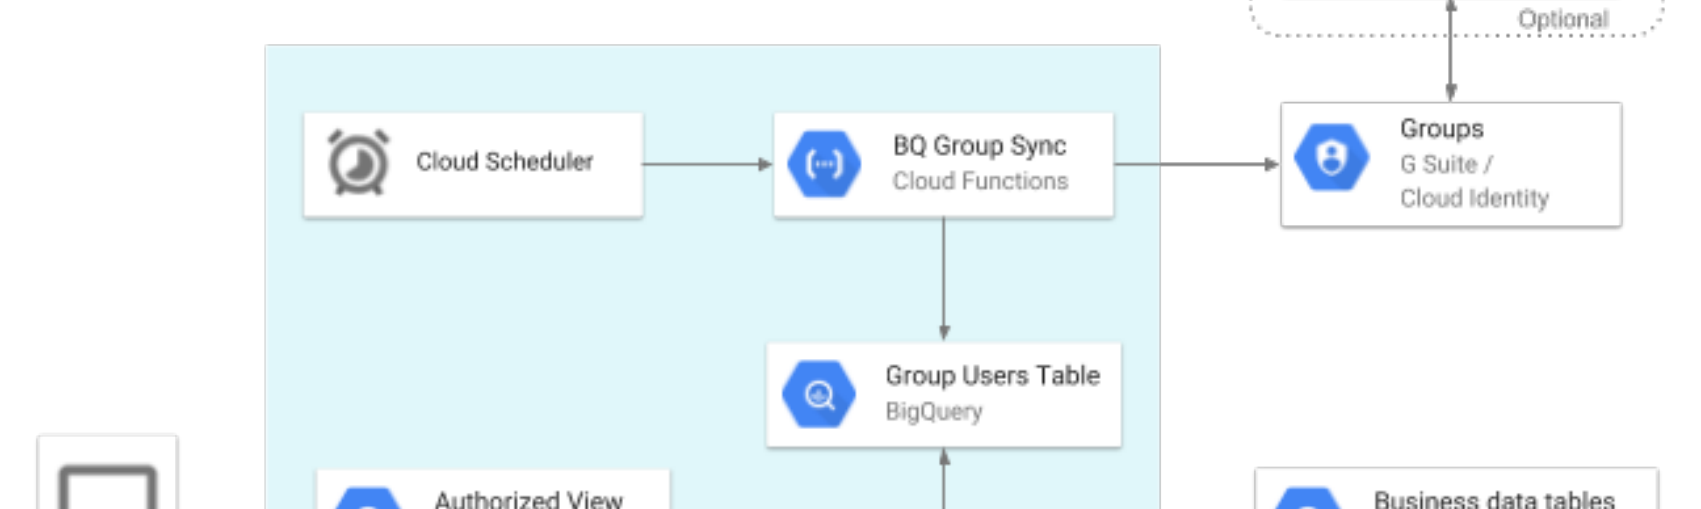 How To Control Access To BigQuery At Row Level With Groups